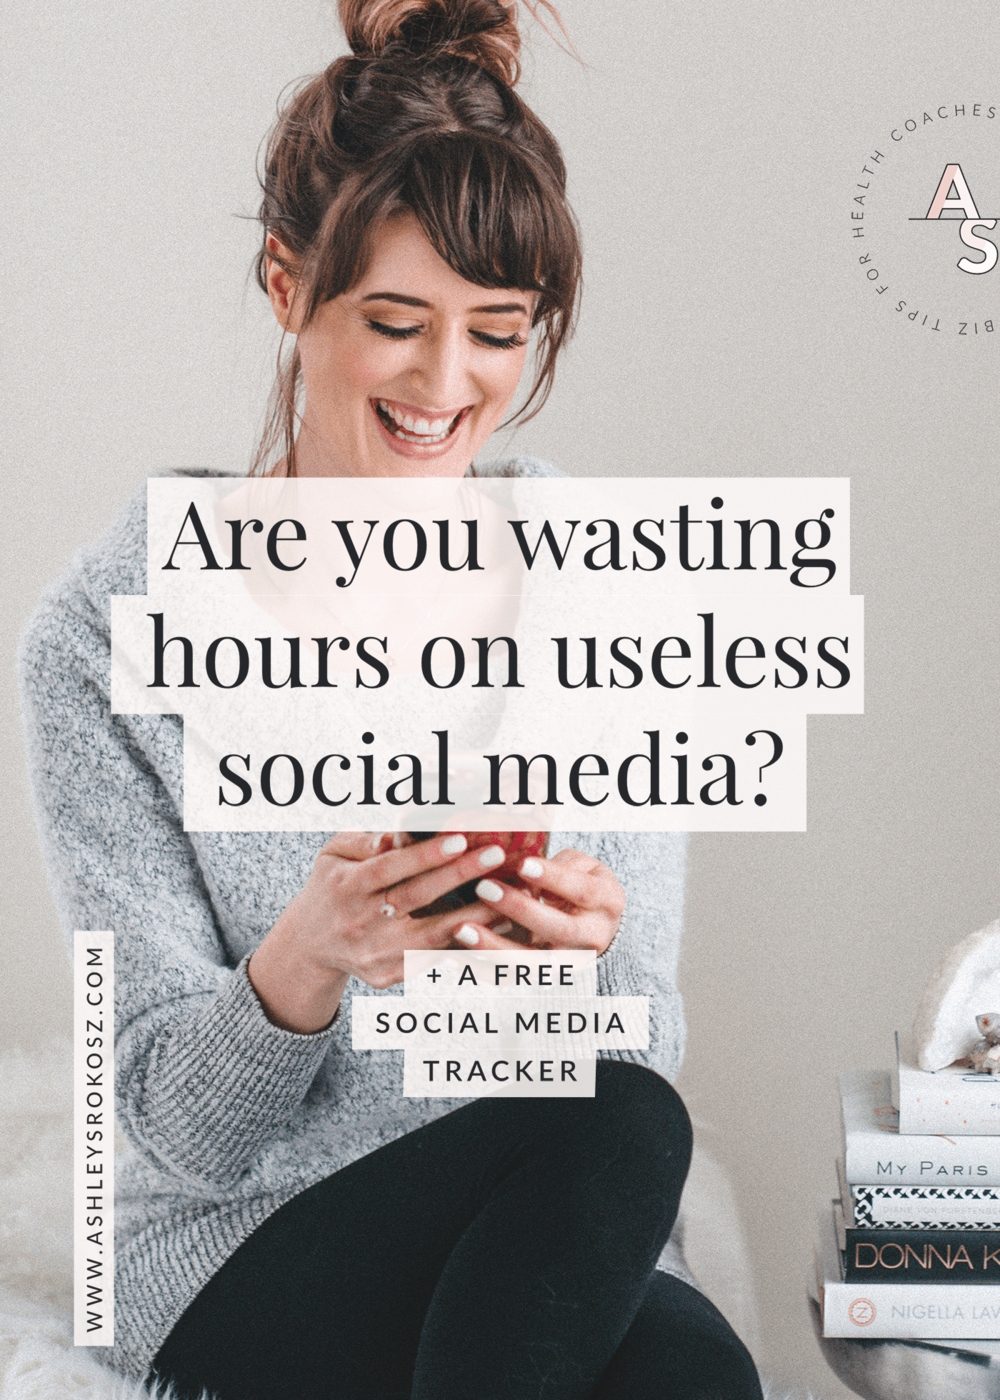 Are you a holistic health business owner who is on social media? Click here for a step-by-step tutorial to figure out if you're even on the right platform (including screenshots), which ones you should focus on PLUS a free social media tracker! This is perfect for holistic nutritionists, health coaches, or yoga teachers.